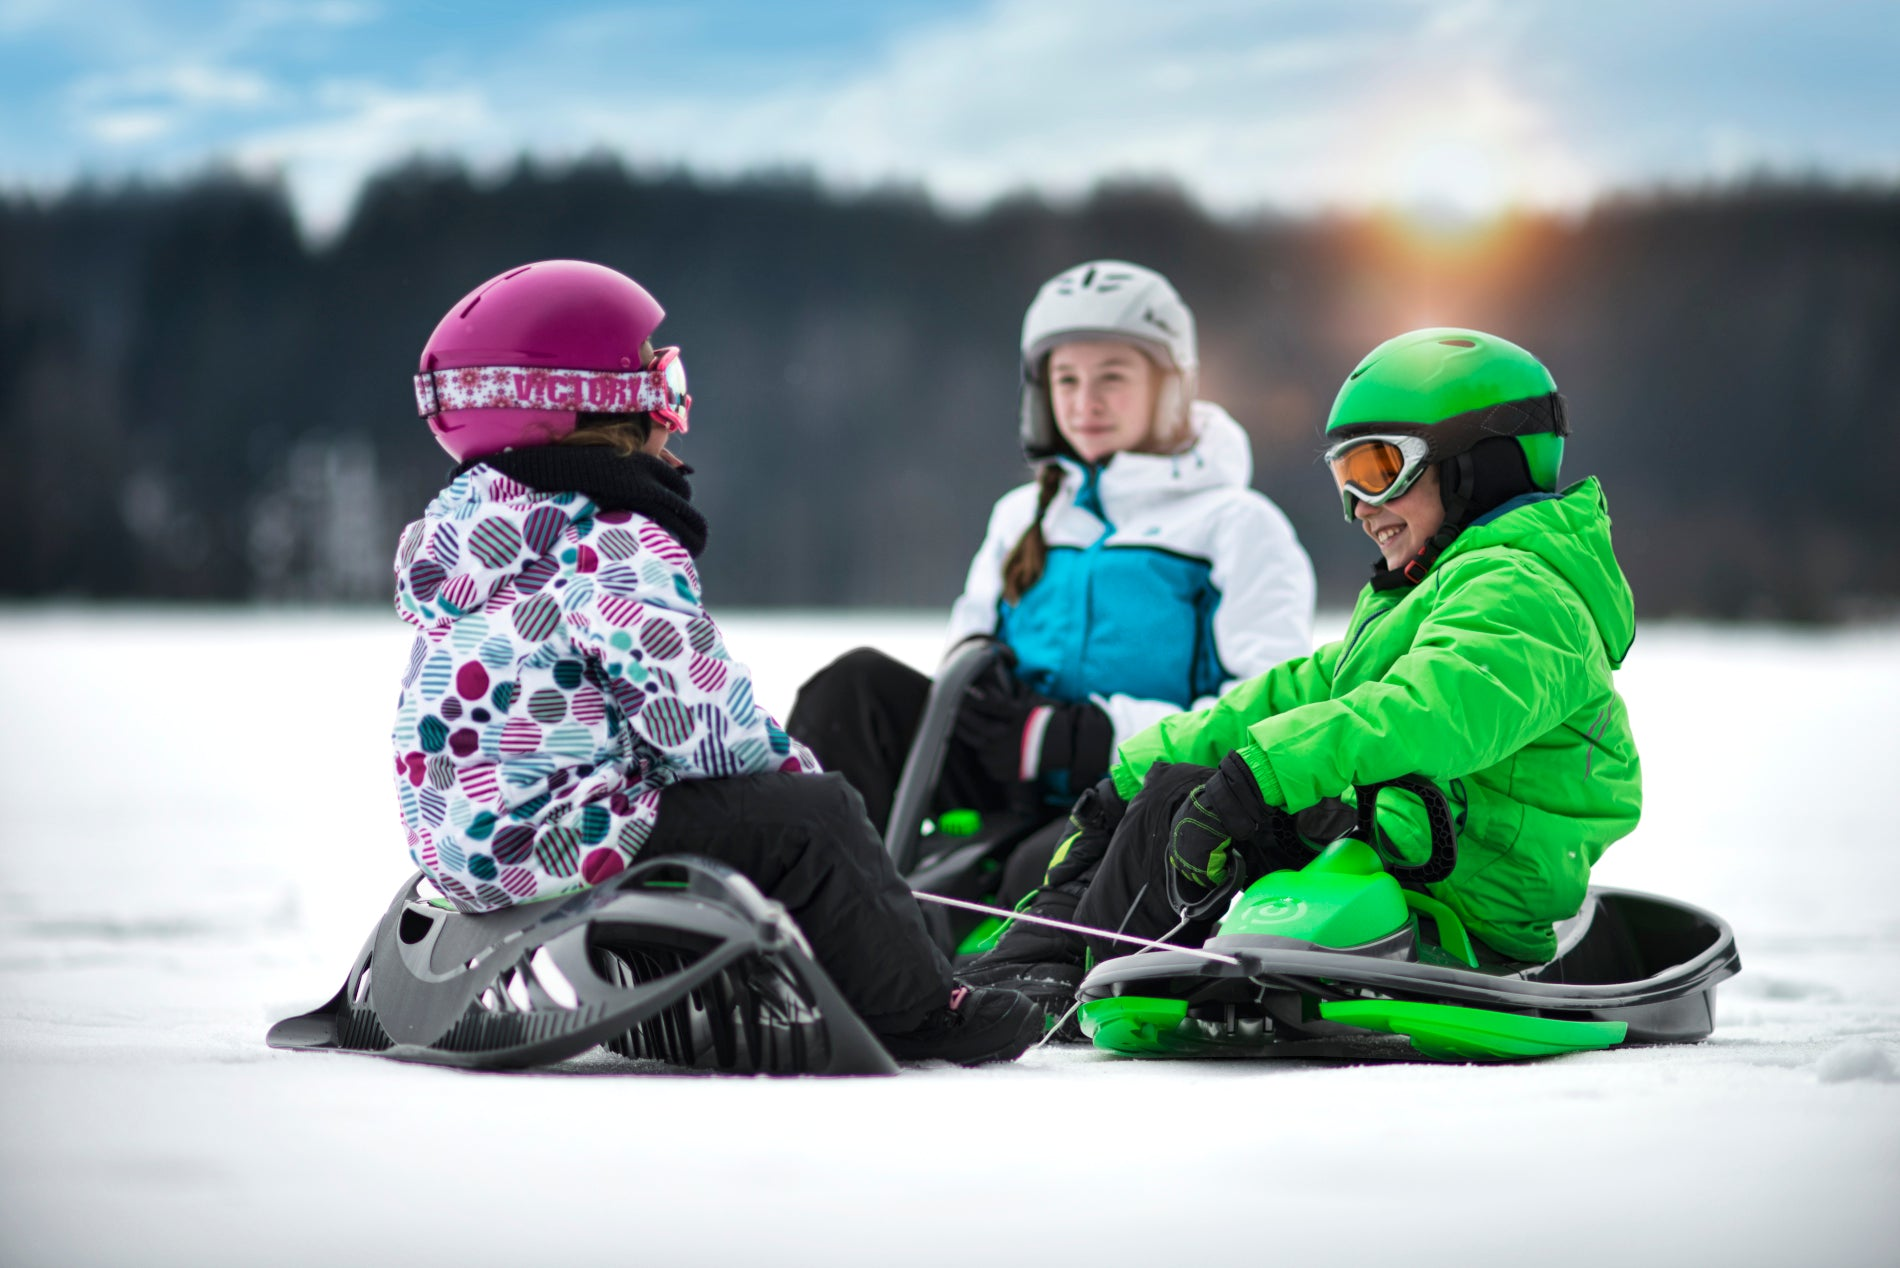 Gizmo Riders 2-Seater Ski Sled with Differential Steering System and Deep Digging Brake Stratos